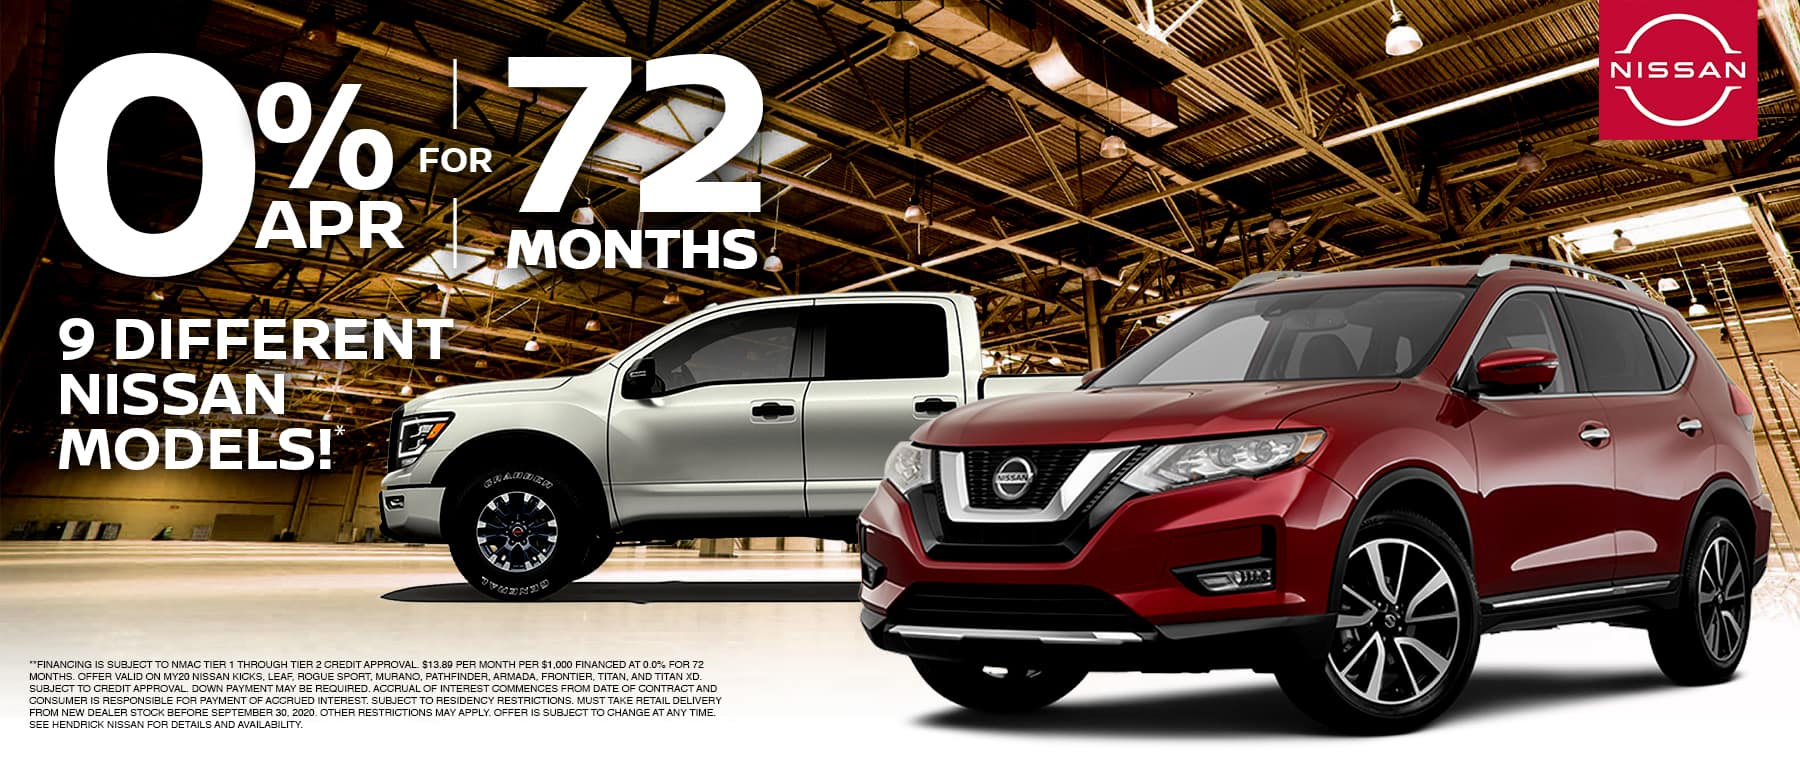 KC Nissan- Sept_TR_Post Labor Day Specials 1800x760_0006_0%